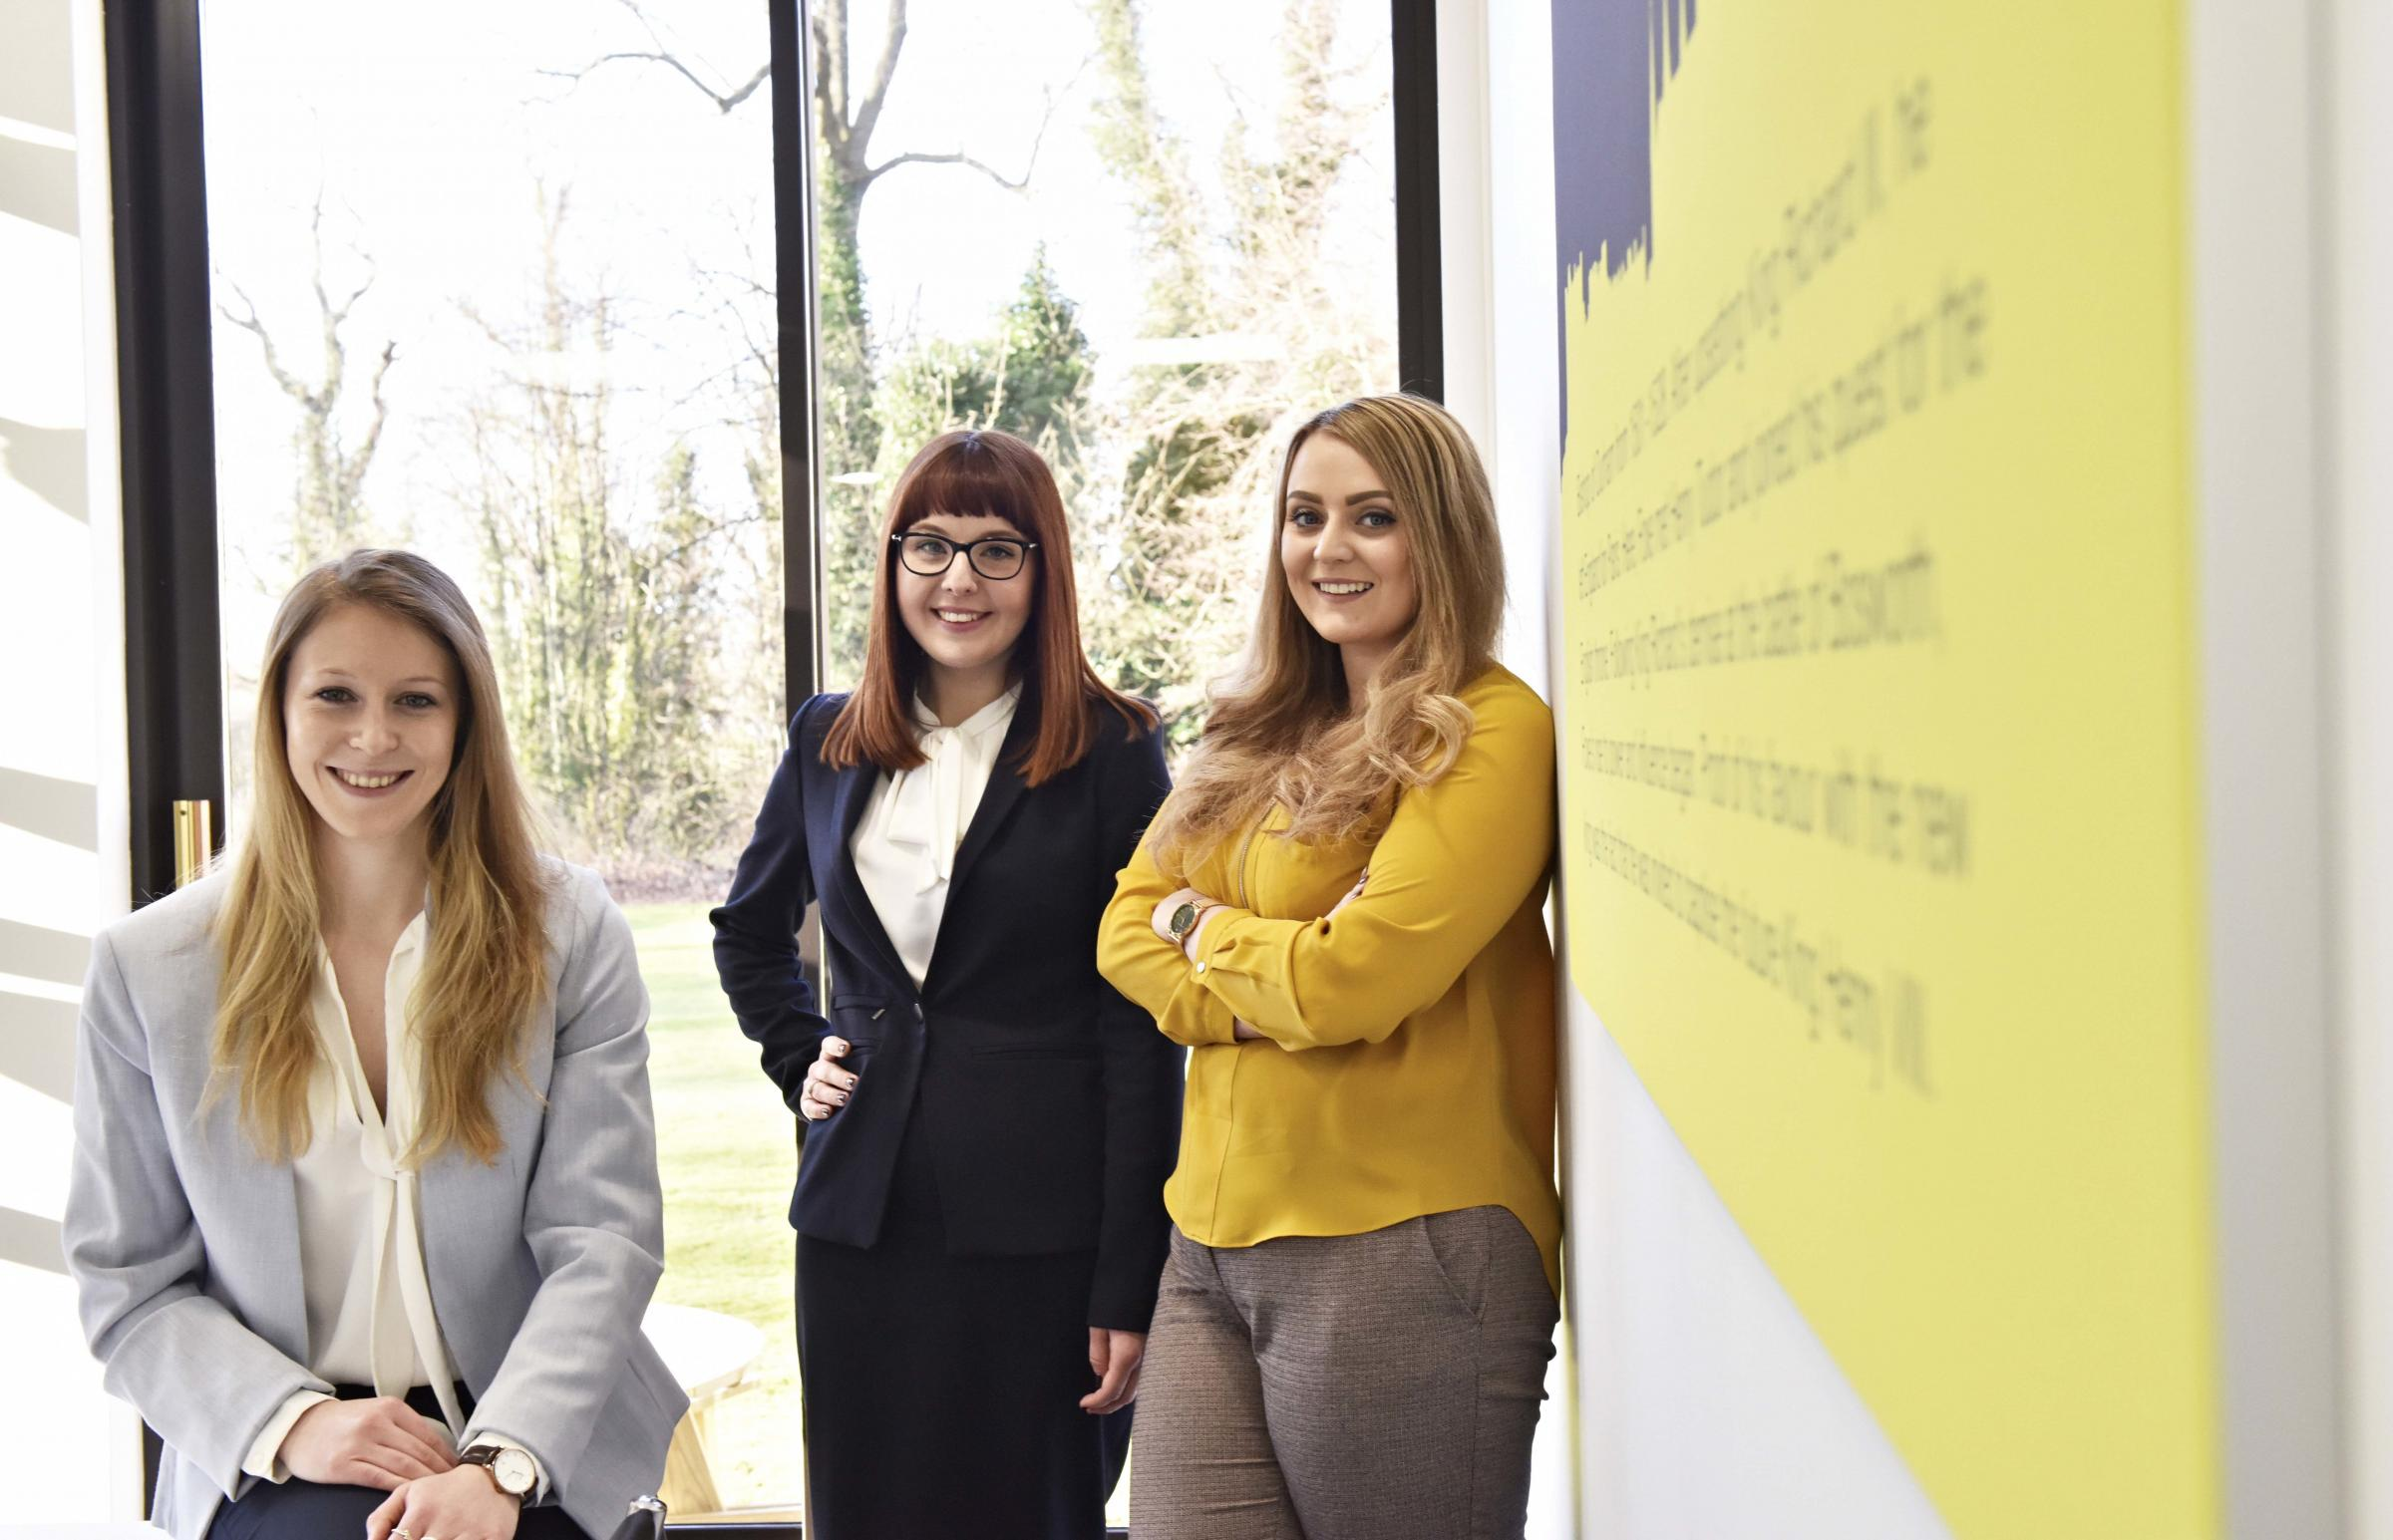 NEW STAFF: The growing team at Swinburne Maddison. Pictured, from left, Lauren Frisby, Sophie Allerton and Sara Stammers